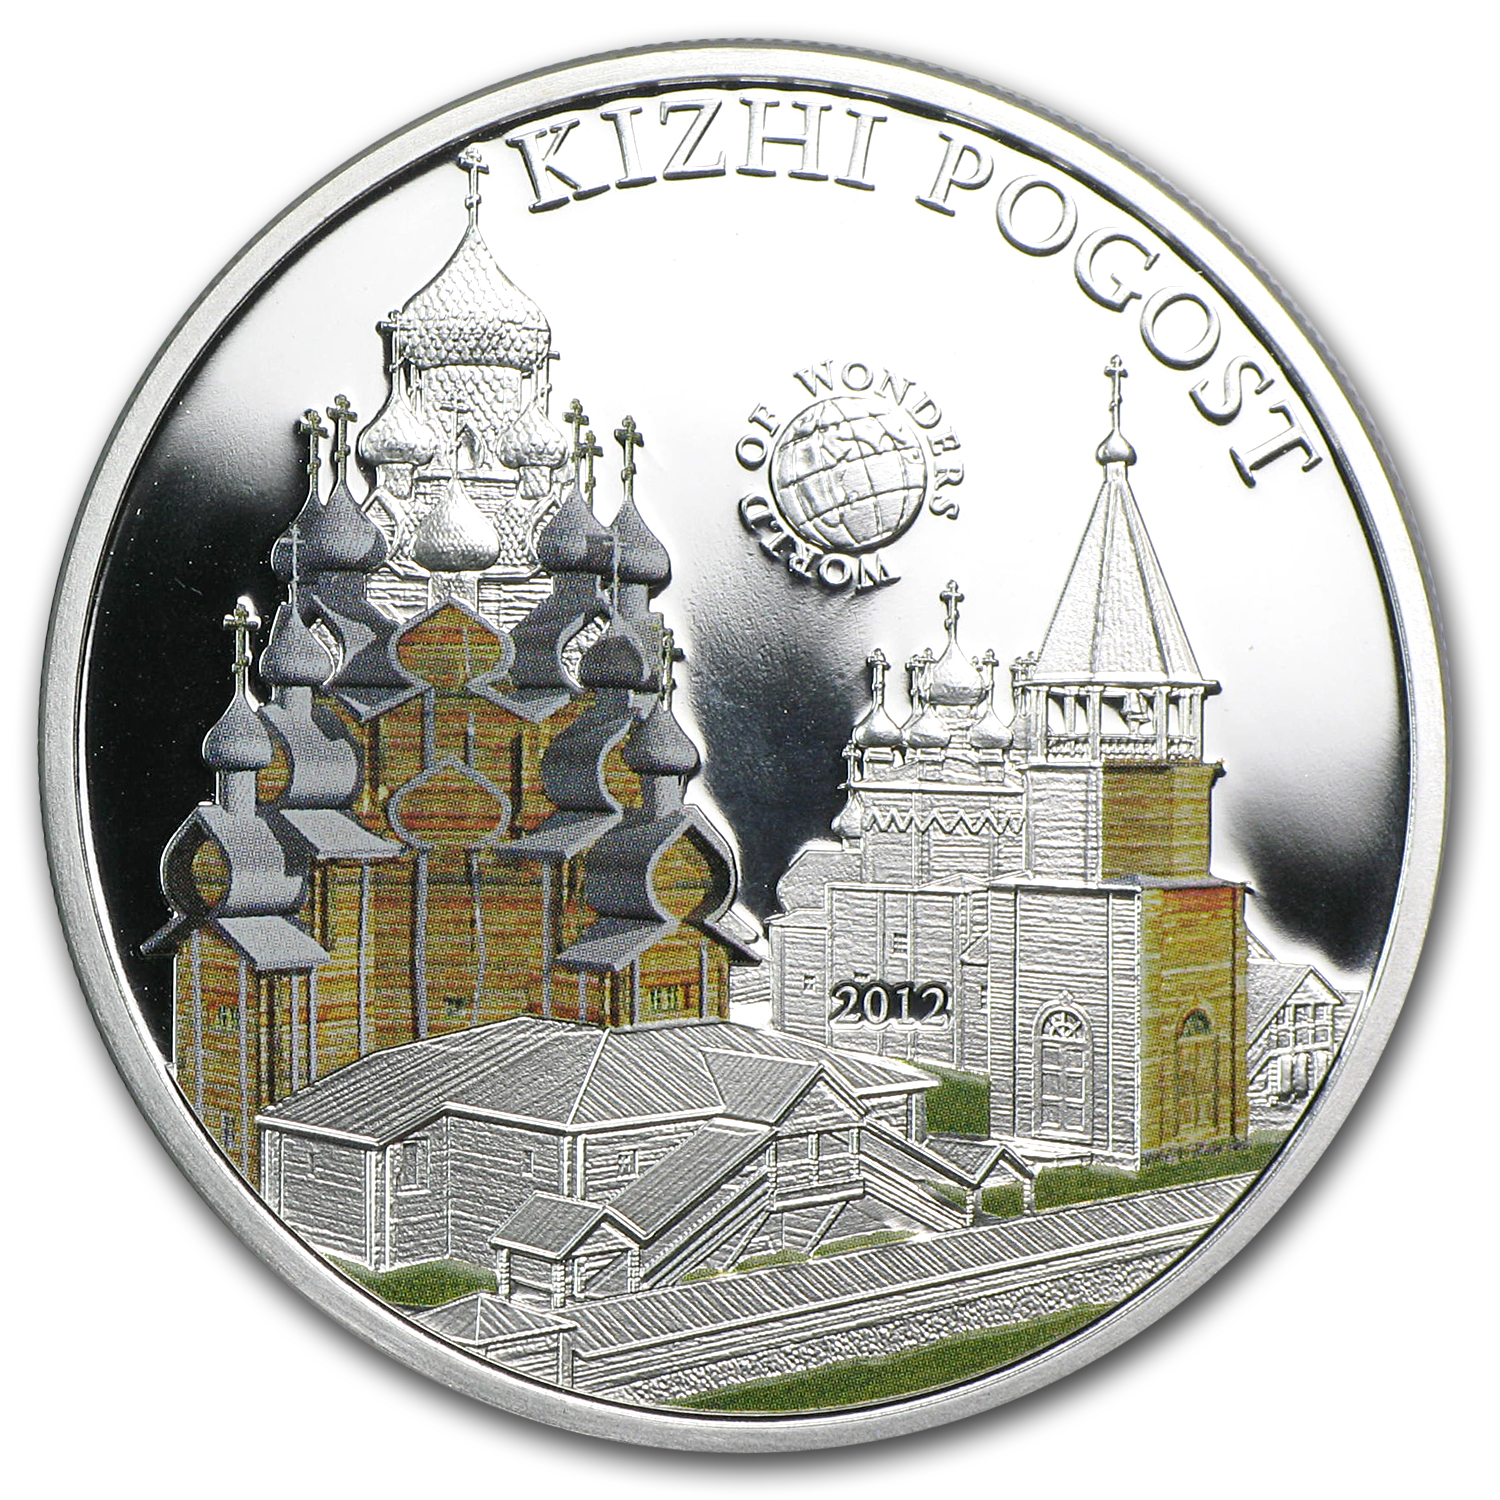 Palau 2012 Silver Proof $5 World of Wonders - Kizhi Pogost